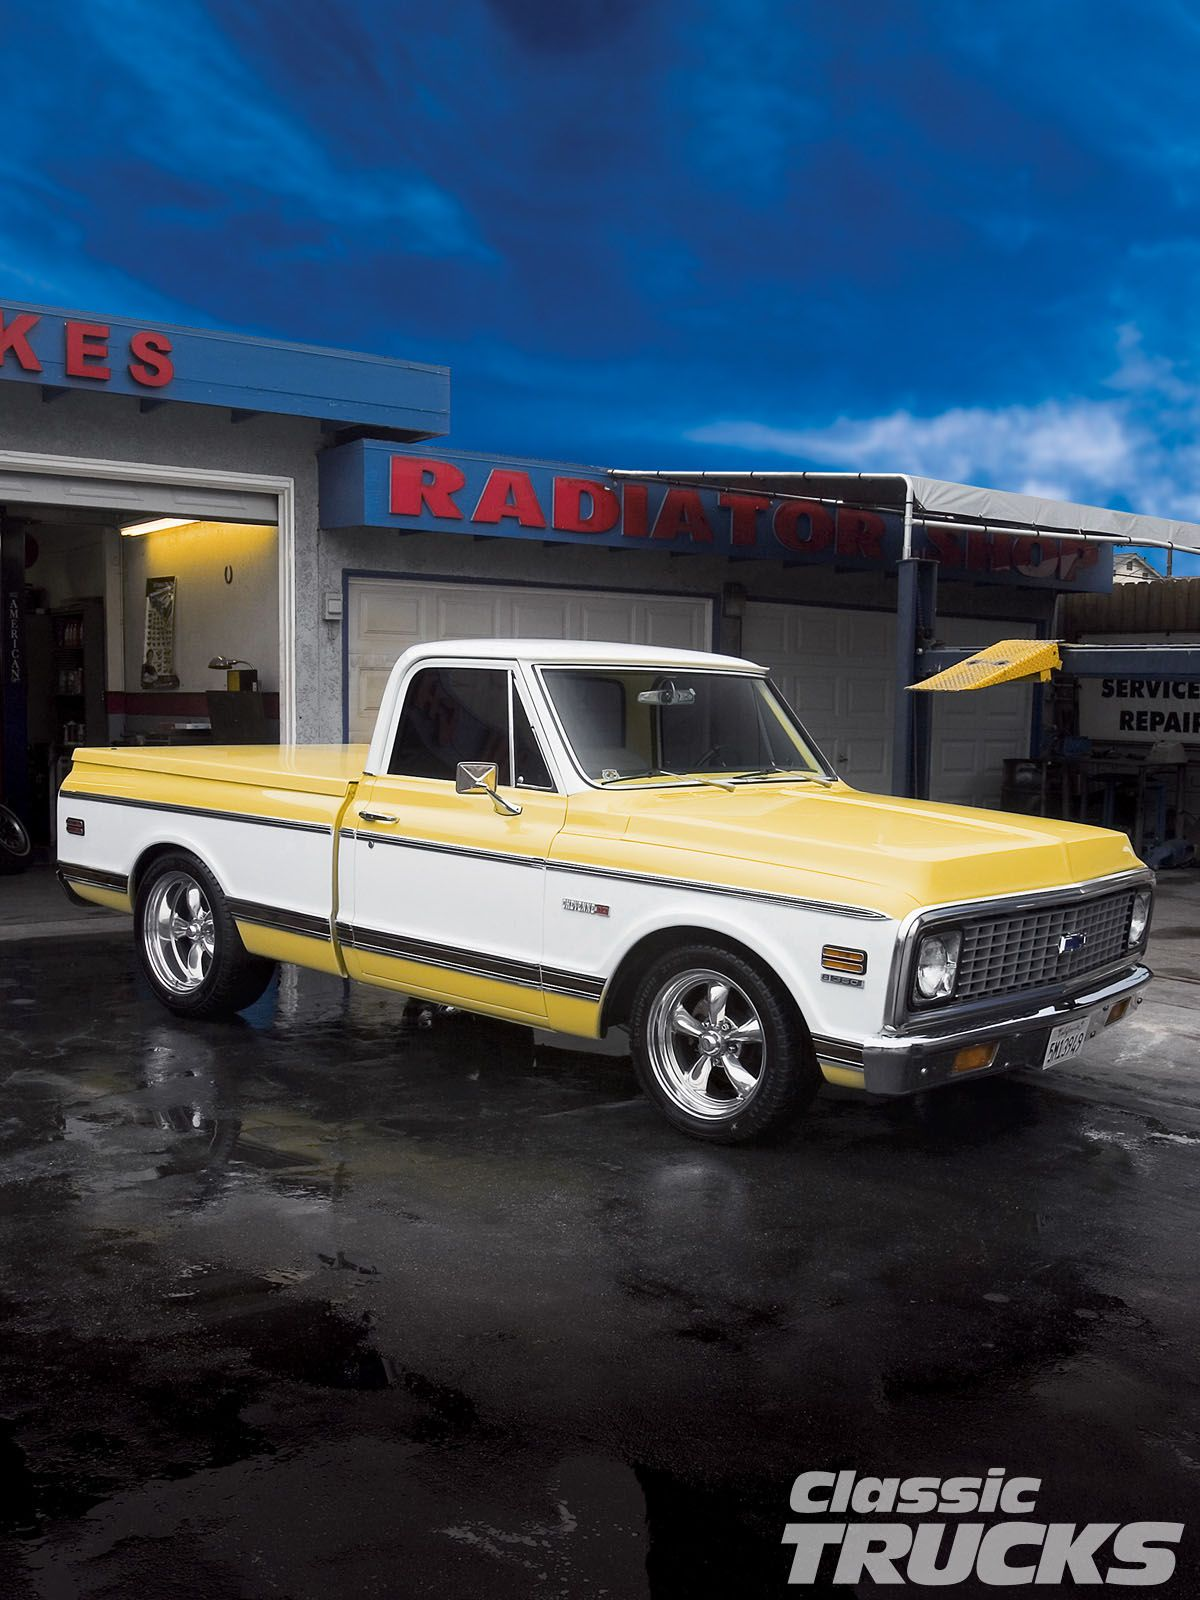 classic chevrolet truck 1971 chevy cheyenne pickup truck front grill [ 1200 x 1600 Pixel ]